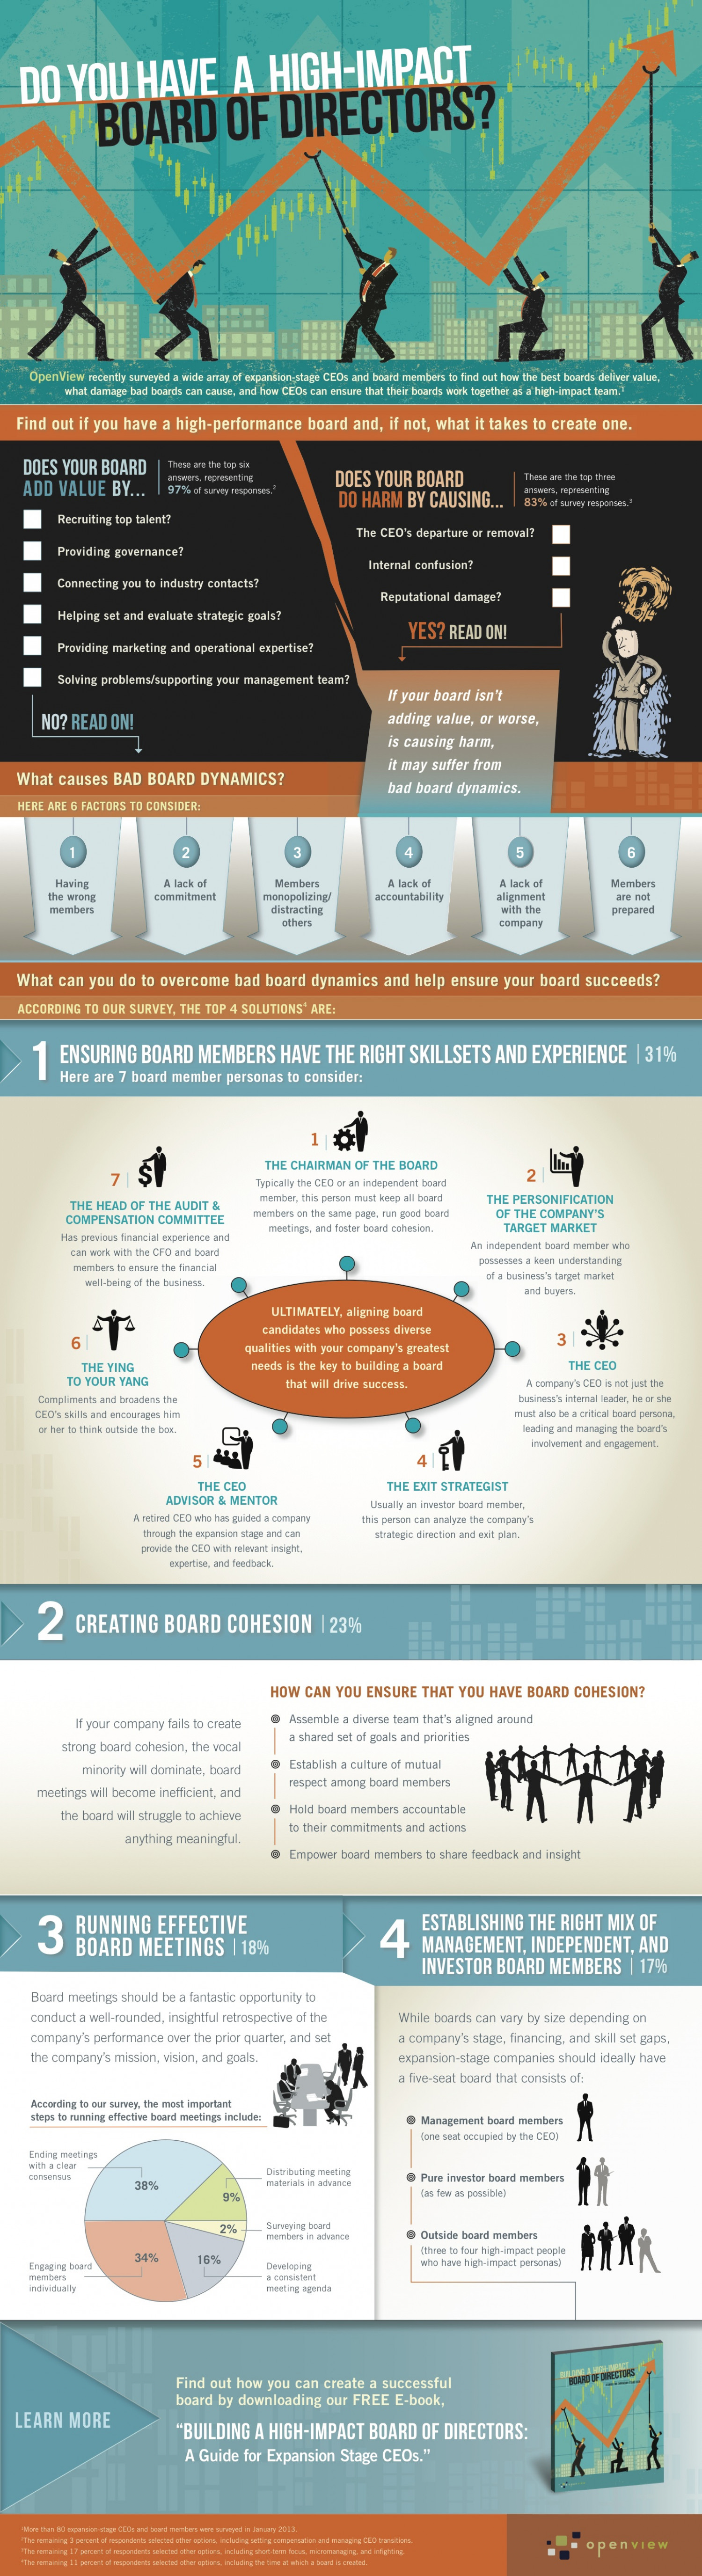 Do You Have a High-Impact Board of Directors? Infographic